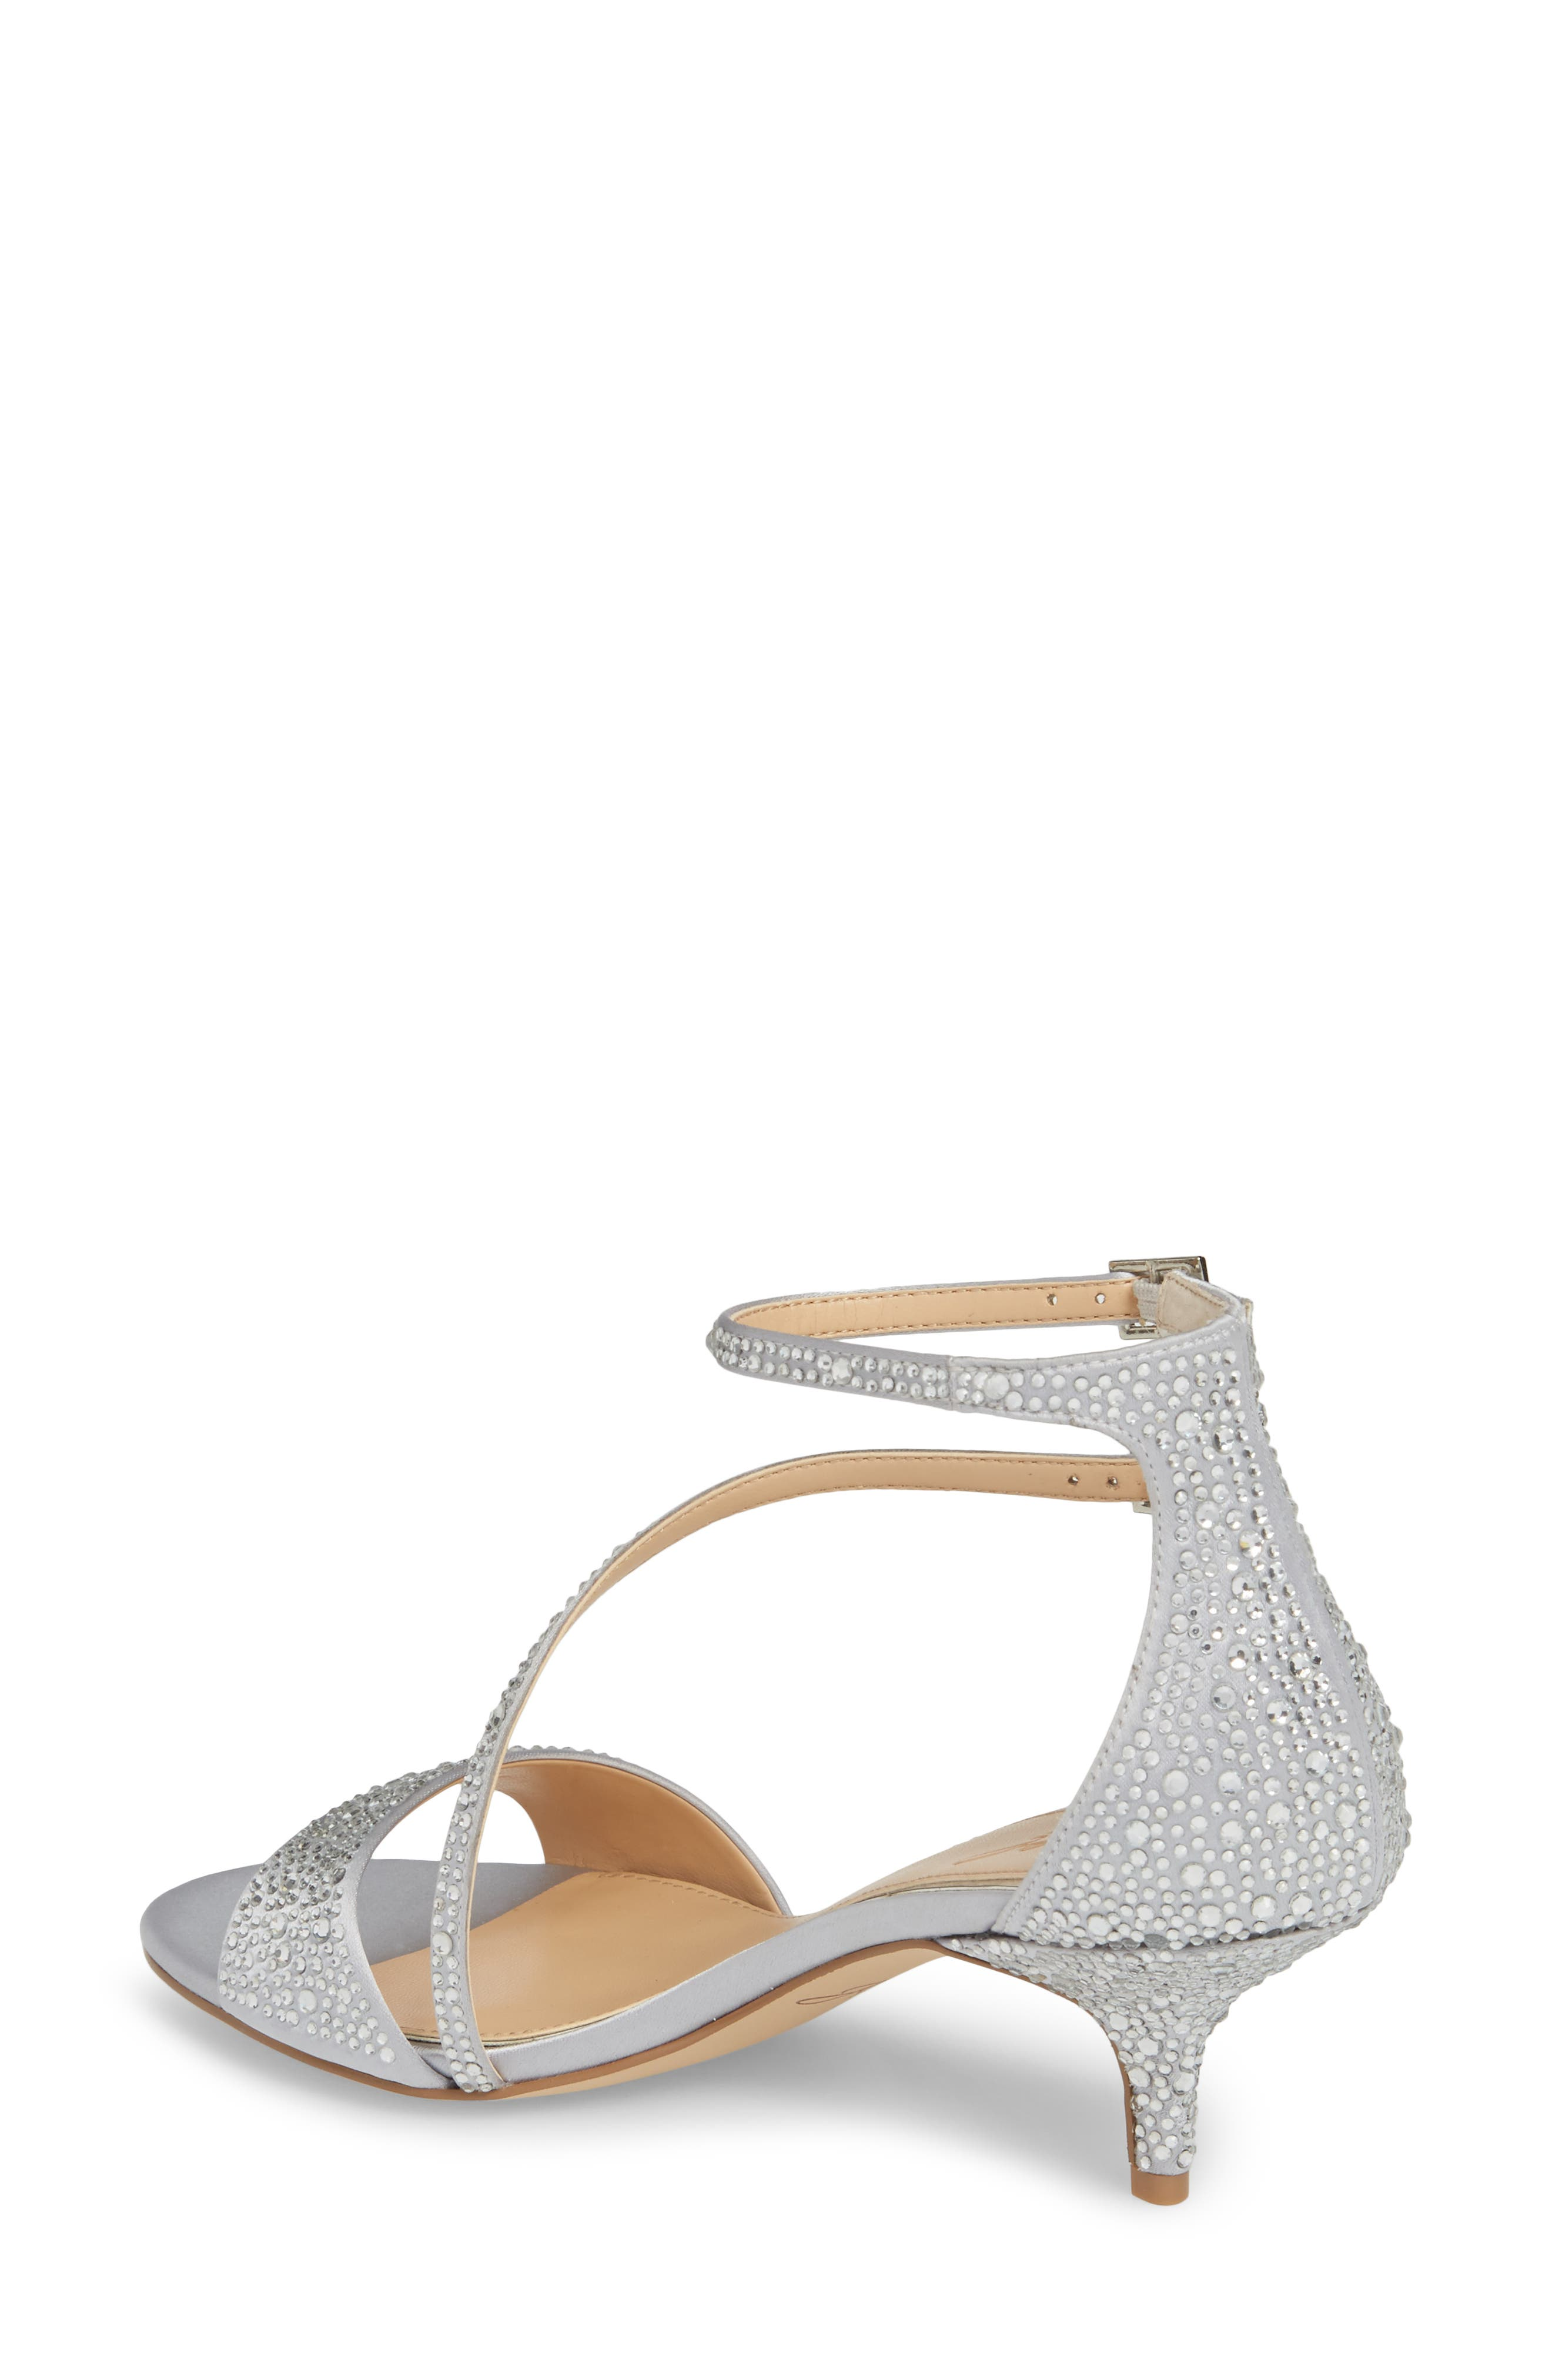 Tangerine Crystal Embellished Sandal,                             Alternate thumbnail 2, color,                             Silver Satin